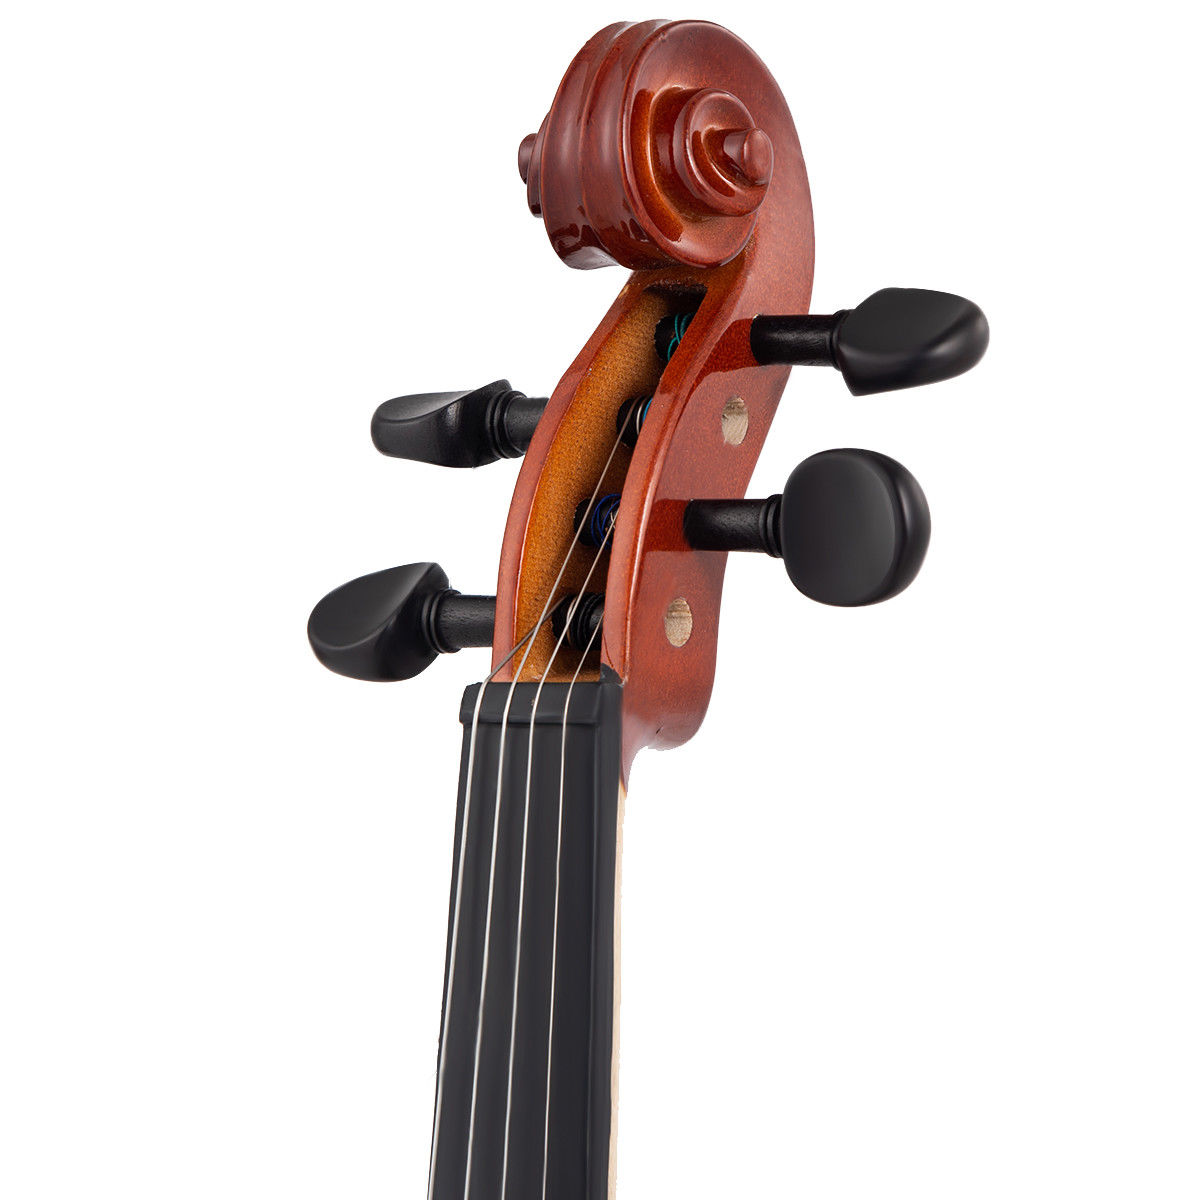 Full Size 4/4 Violin Solid Wood w/ Hard Case Bow Rosin Bridge Student Starter - image 3 de 10